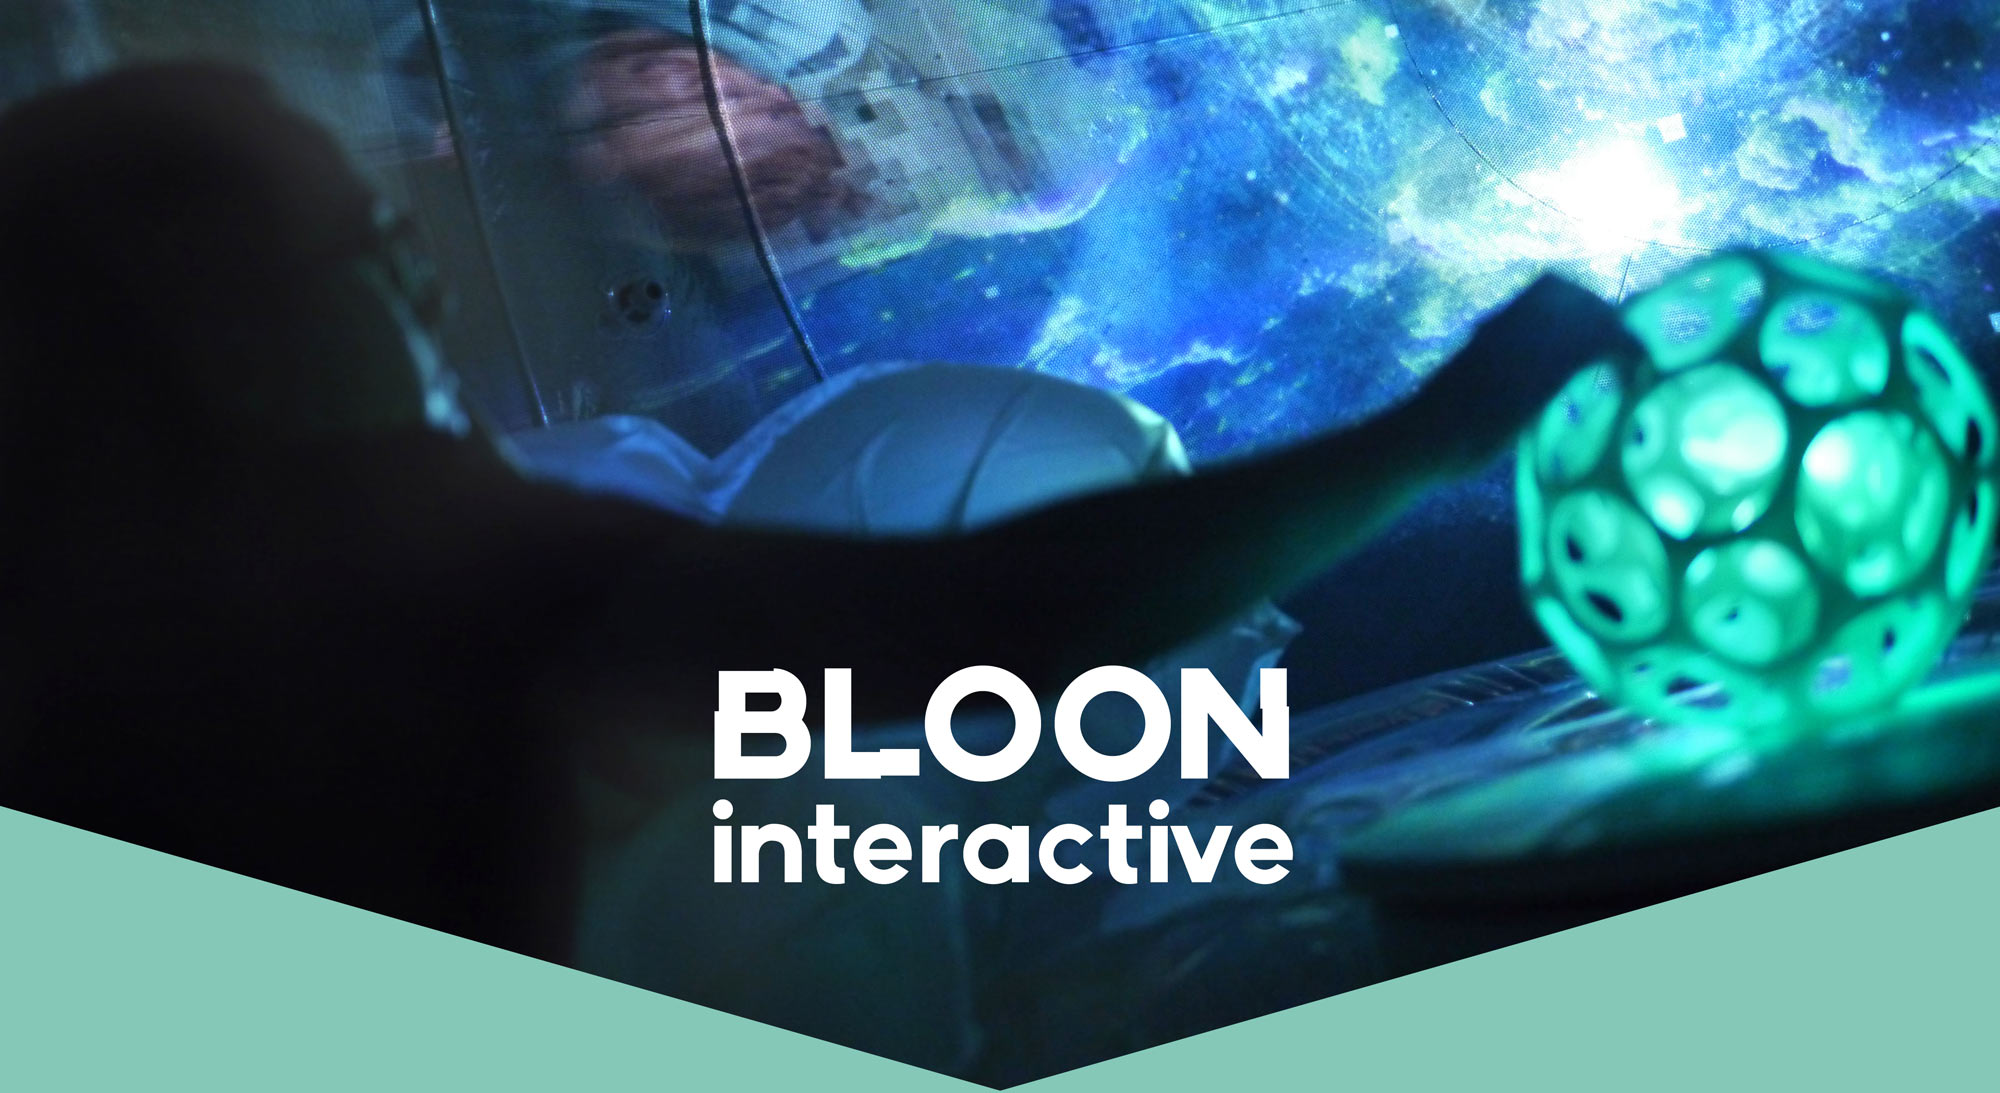 BLOON interactive